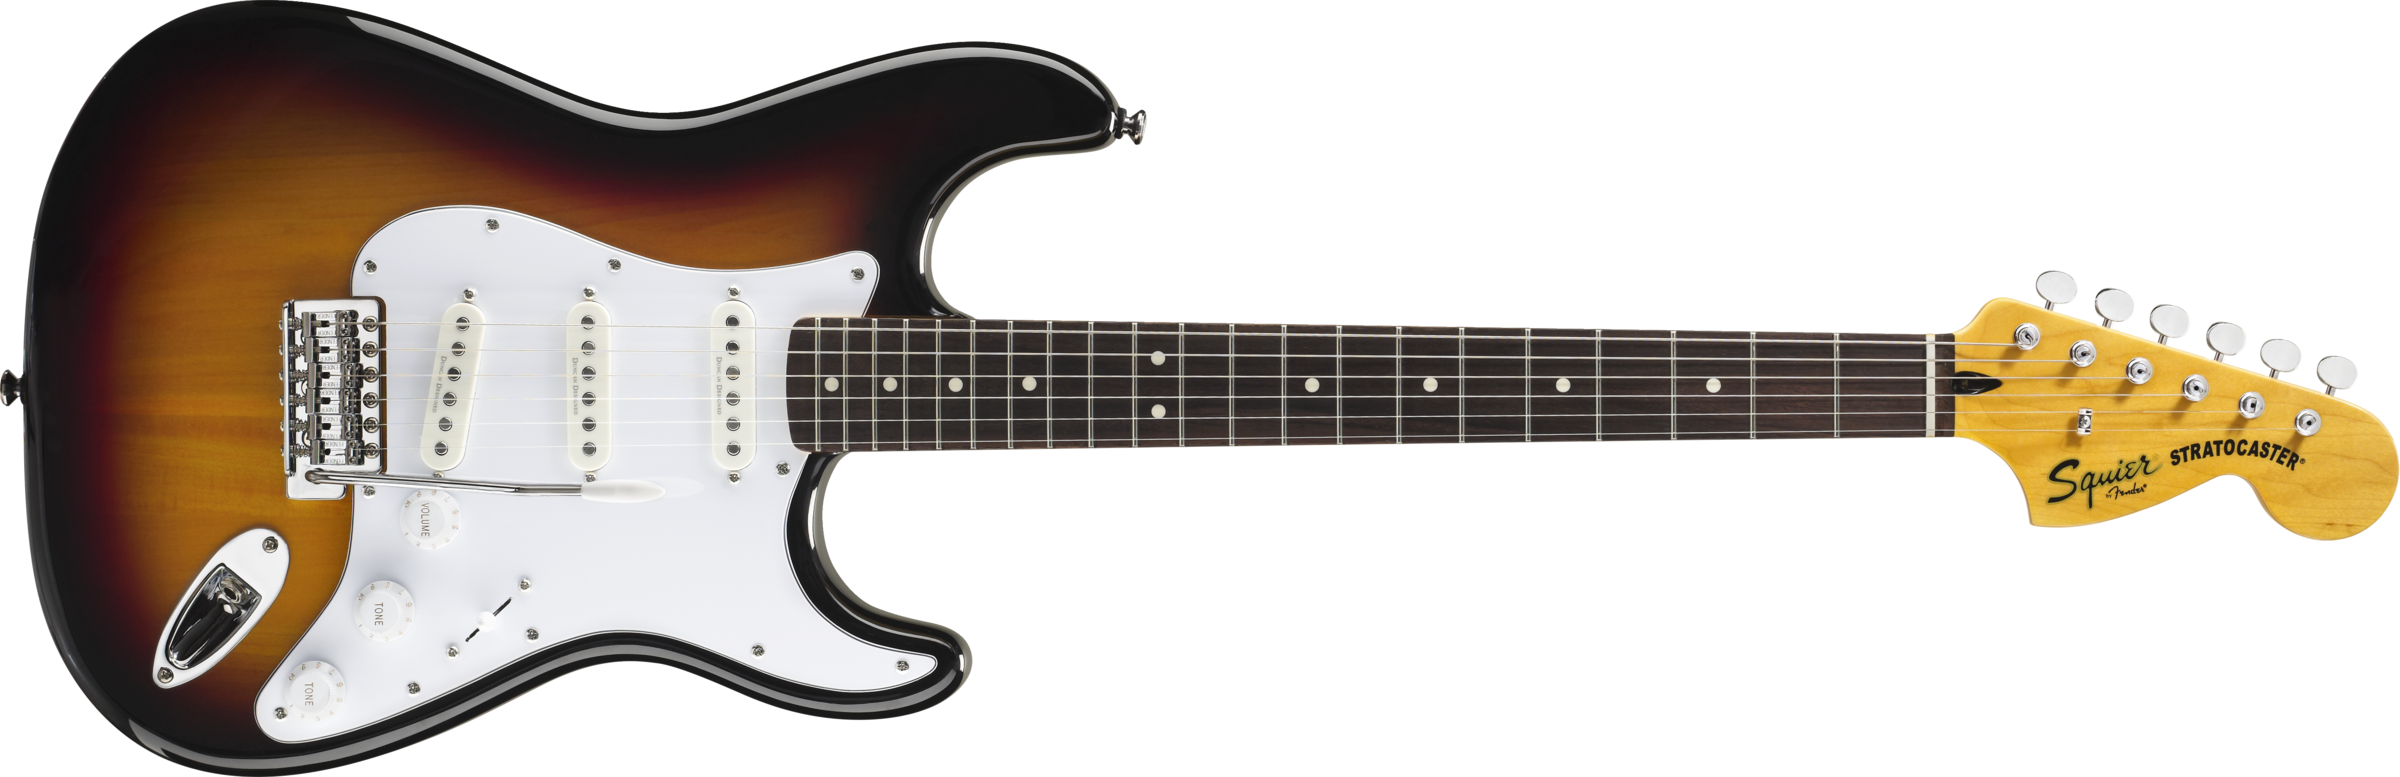 squier vintage modified stratocaster image 1475586 audiofanzine. Black Bedroom Furniture Sets. Home Design Ideas